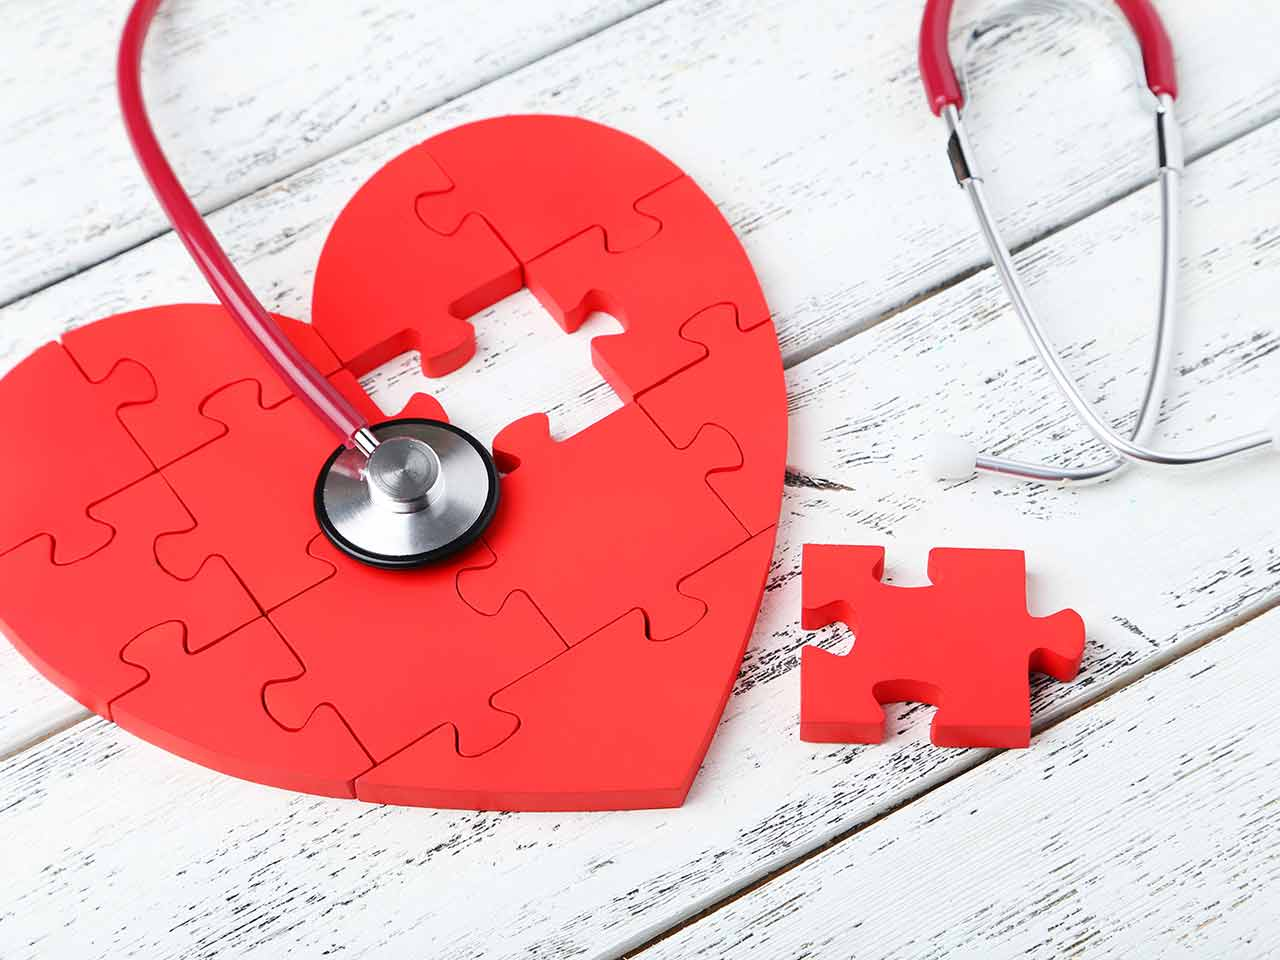 Heart puzzle with piece missing and stethoscope